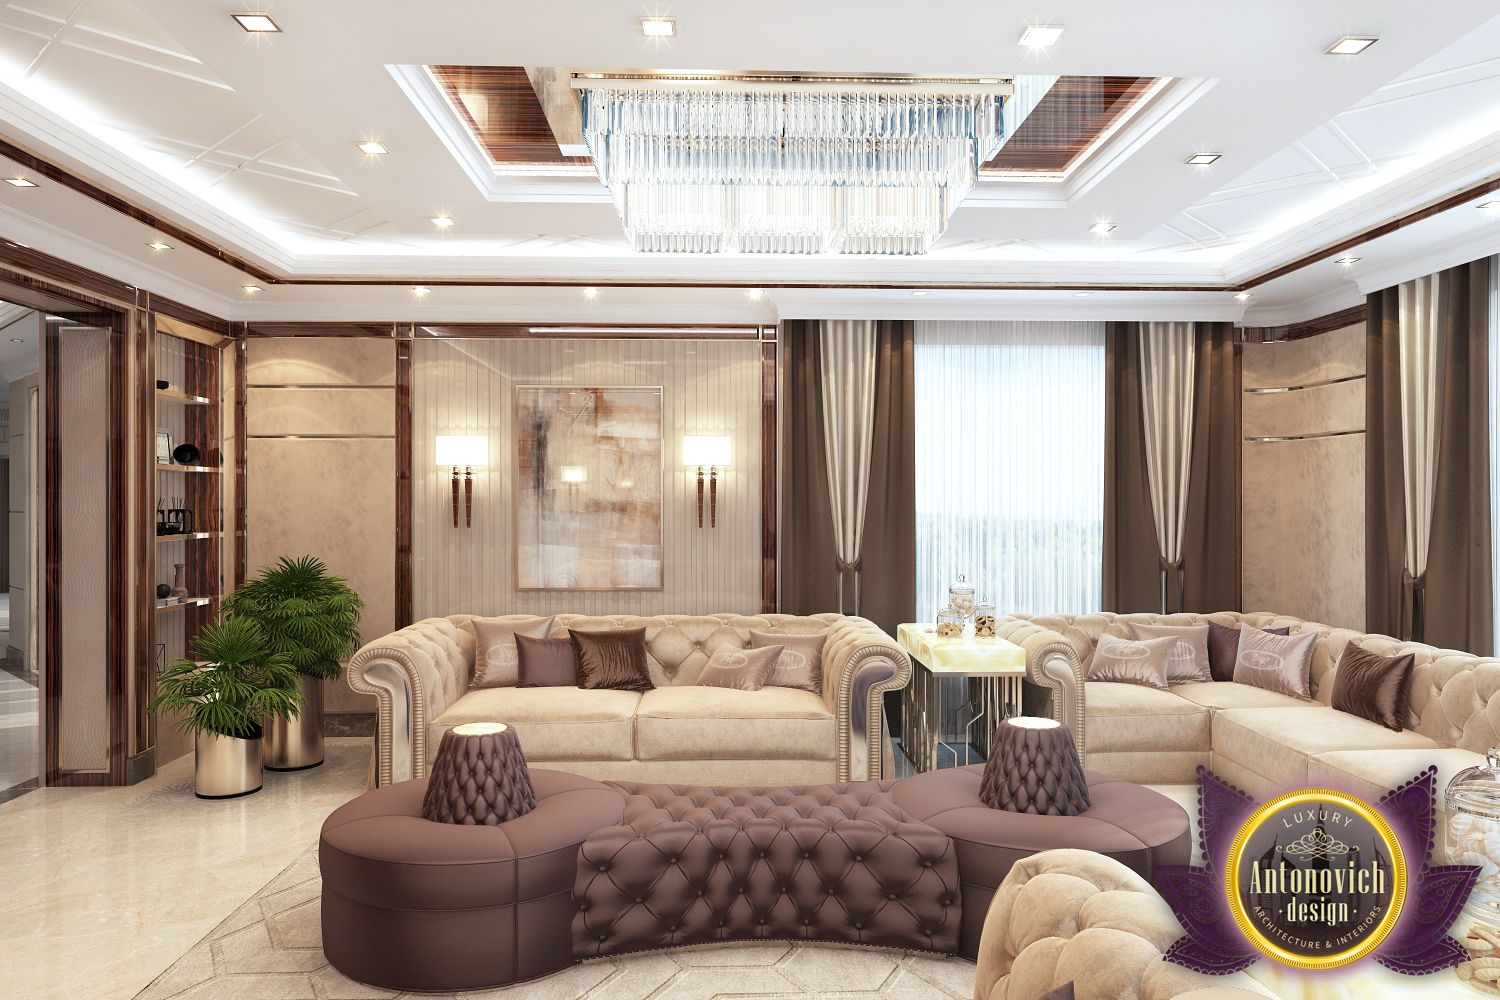 Kenyadesign Home Decor Ideas From Luxury Antonovich Design